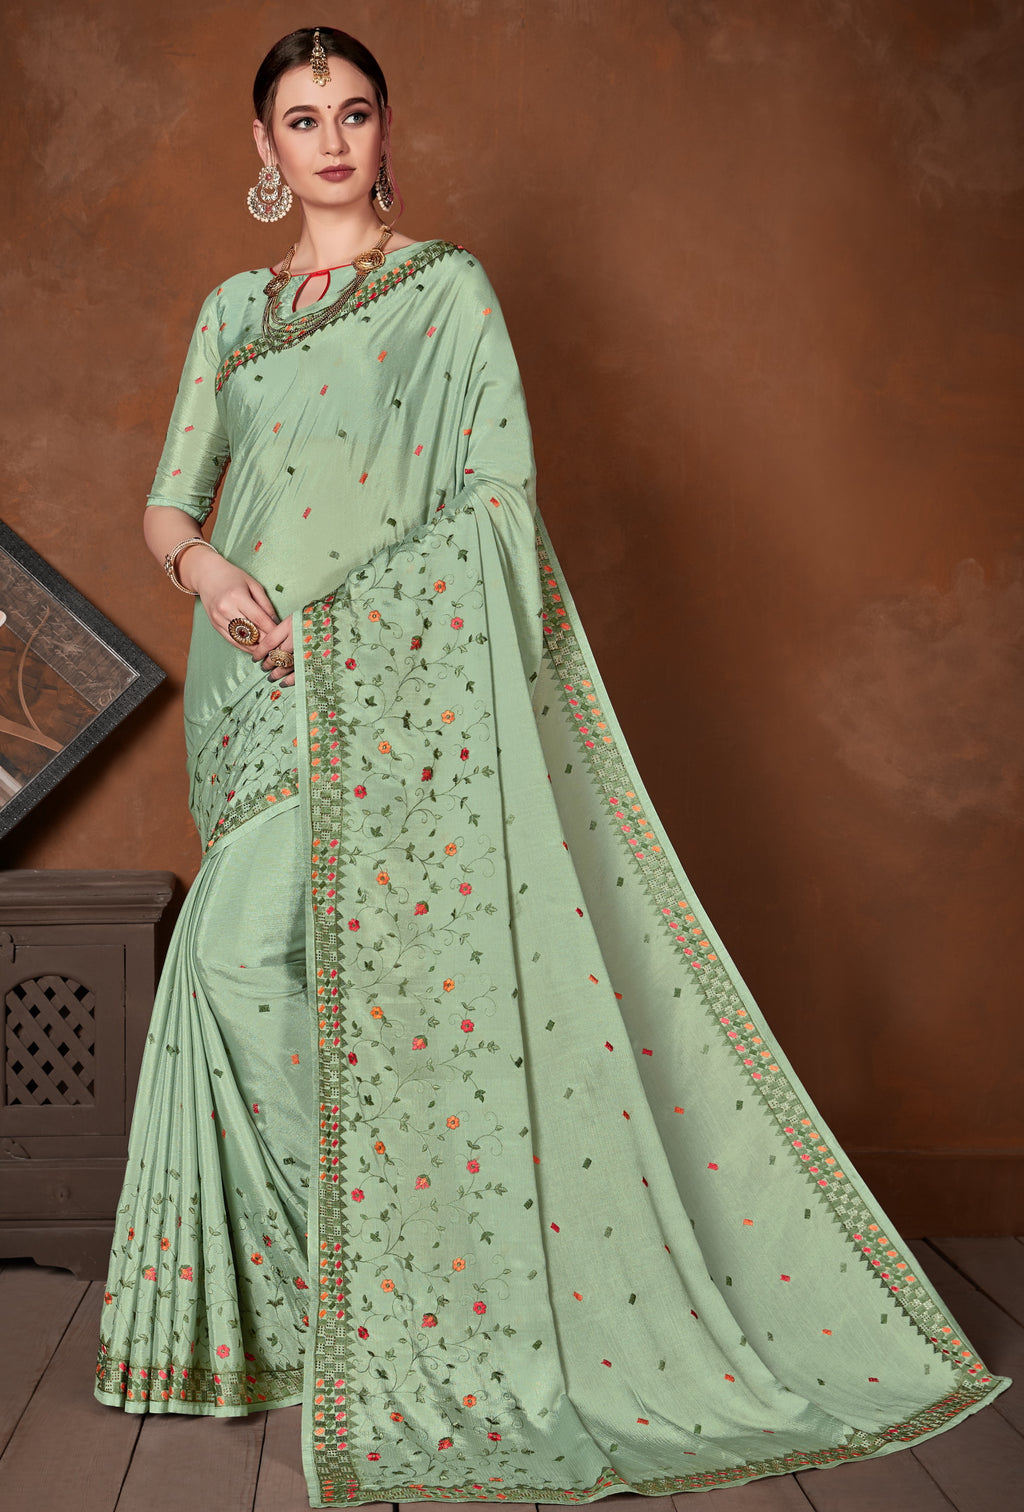 Aqua Green Color Wrinkle Crepe Designer Party Wear Sarees NYF-5882